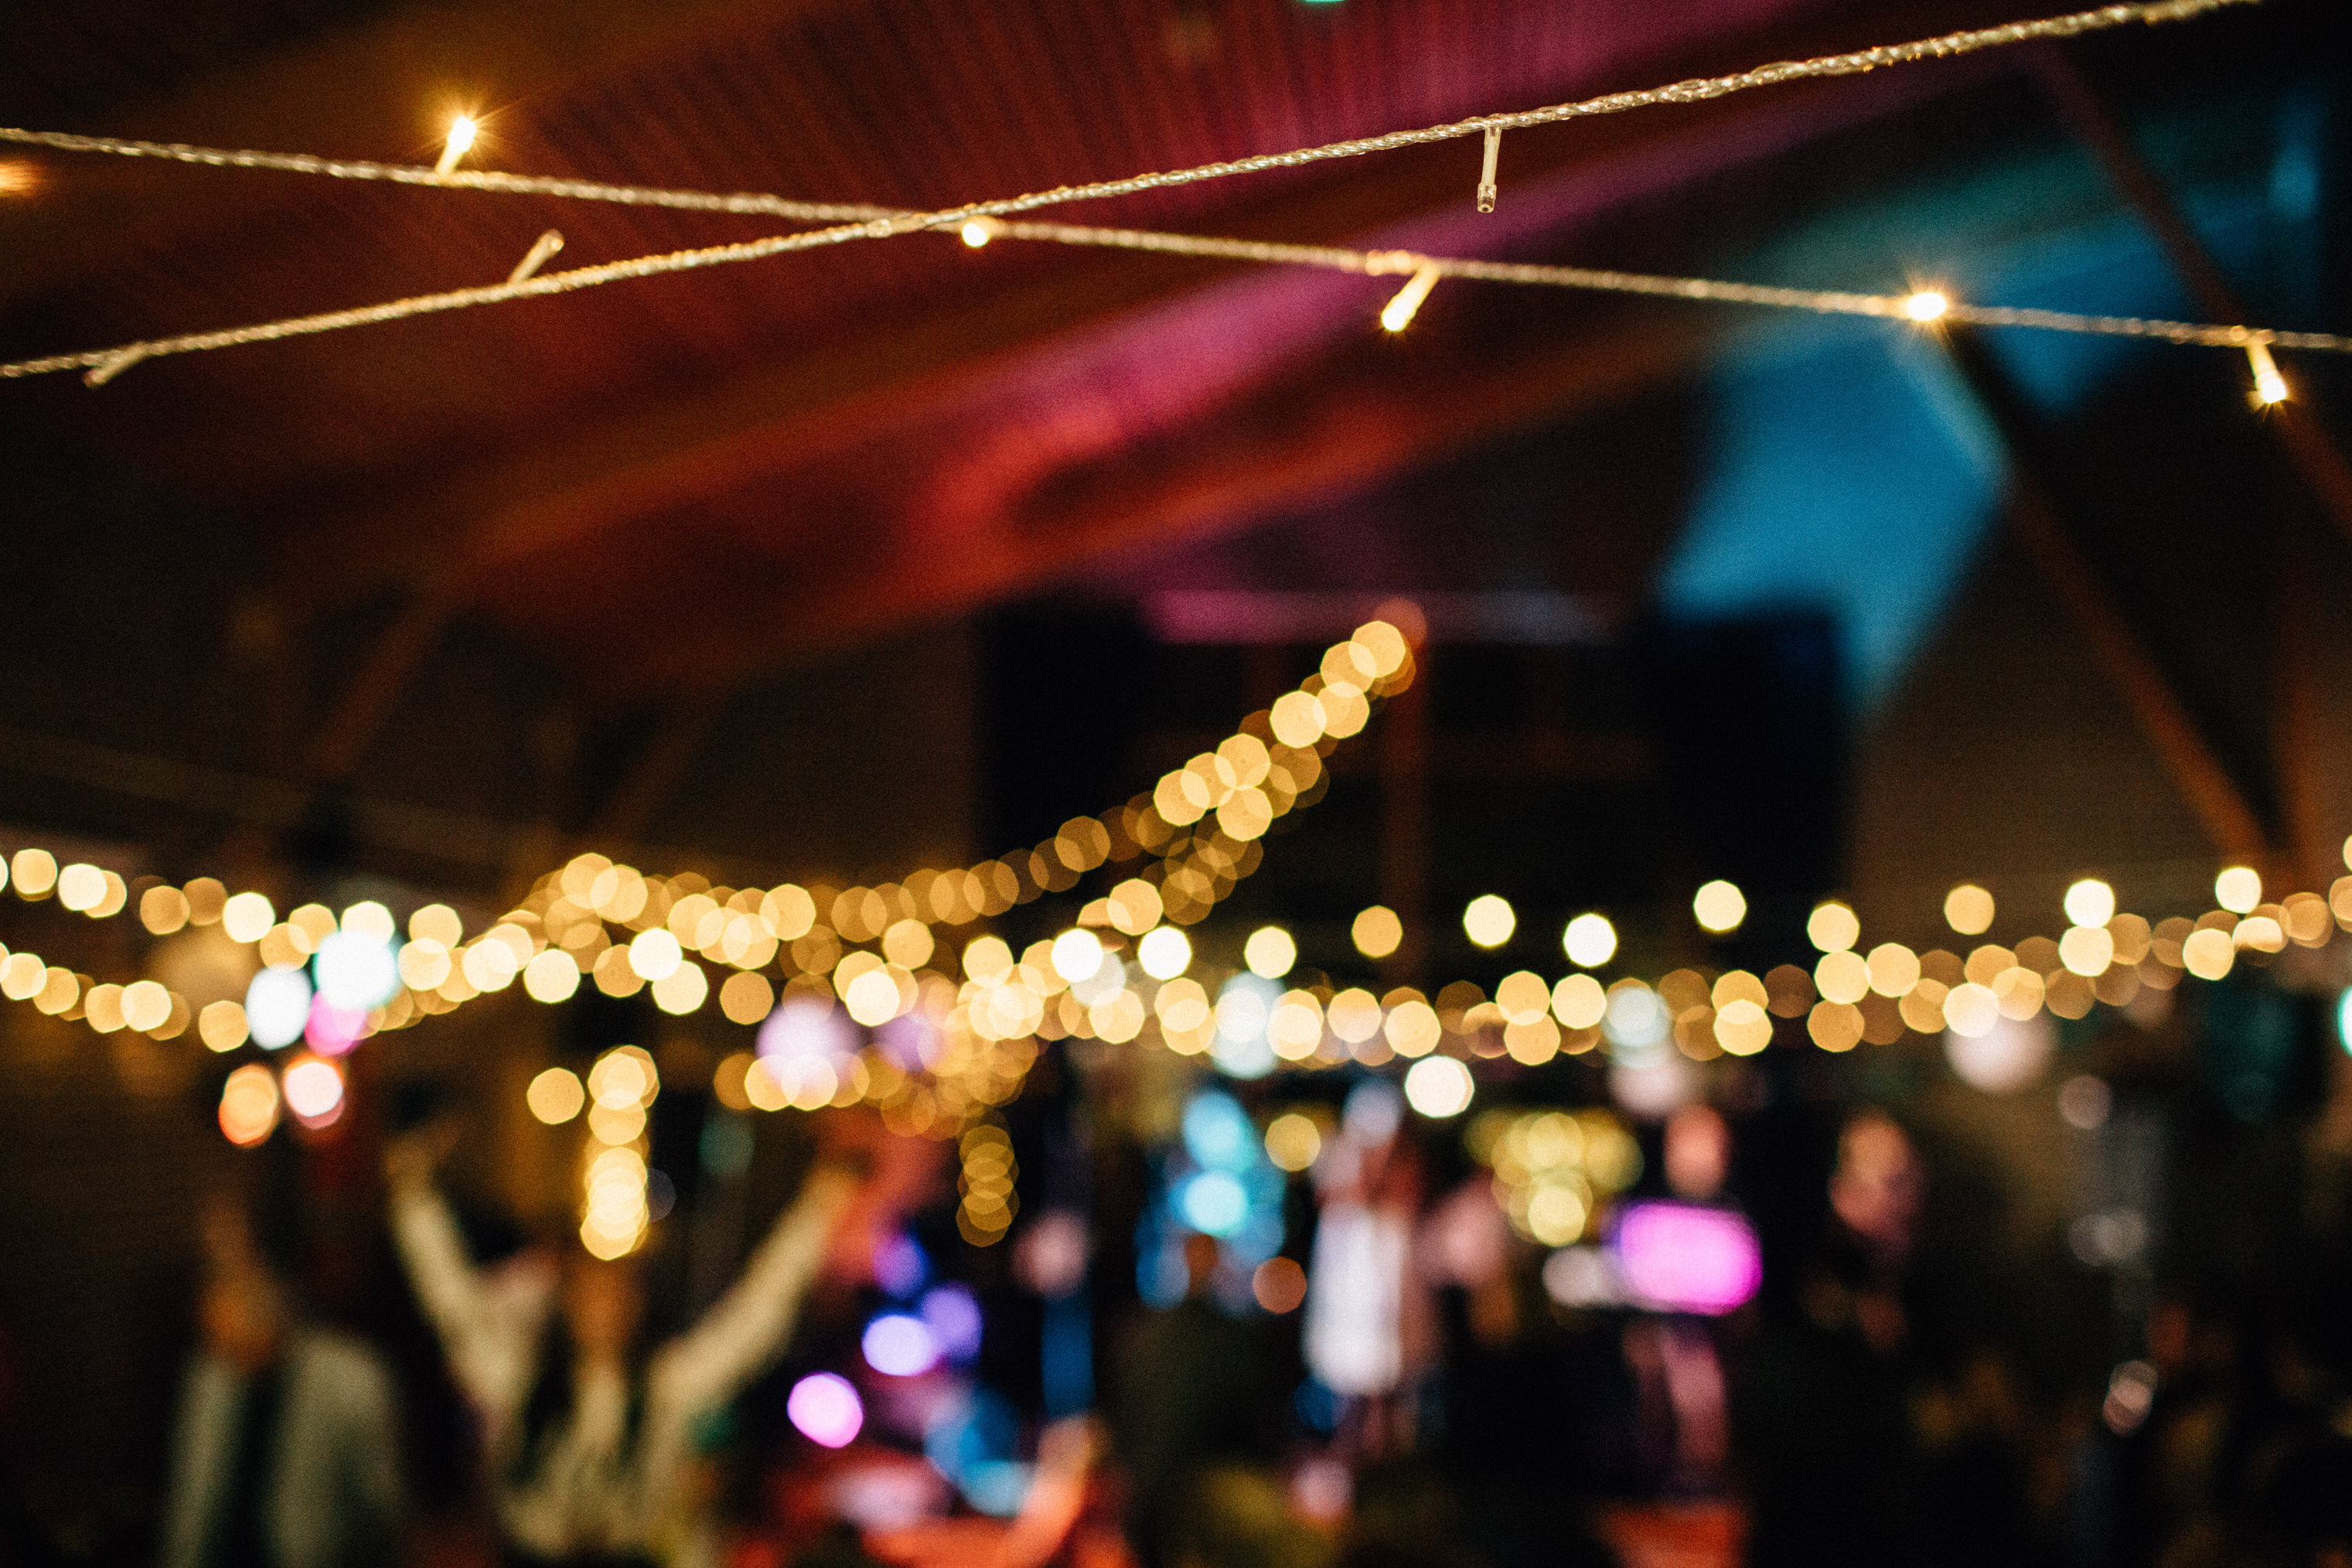 quirky fun autumn wedding in london wedding photographer documentary style first dance fairy lights decoration